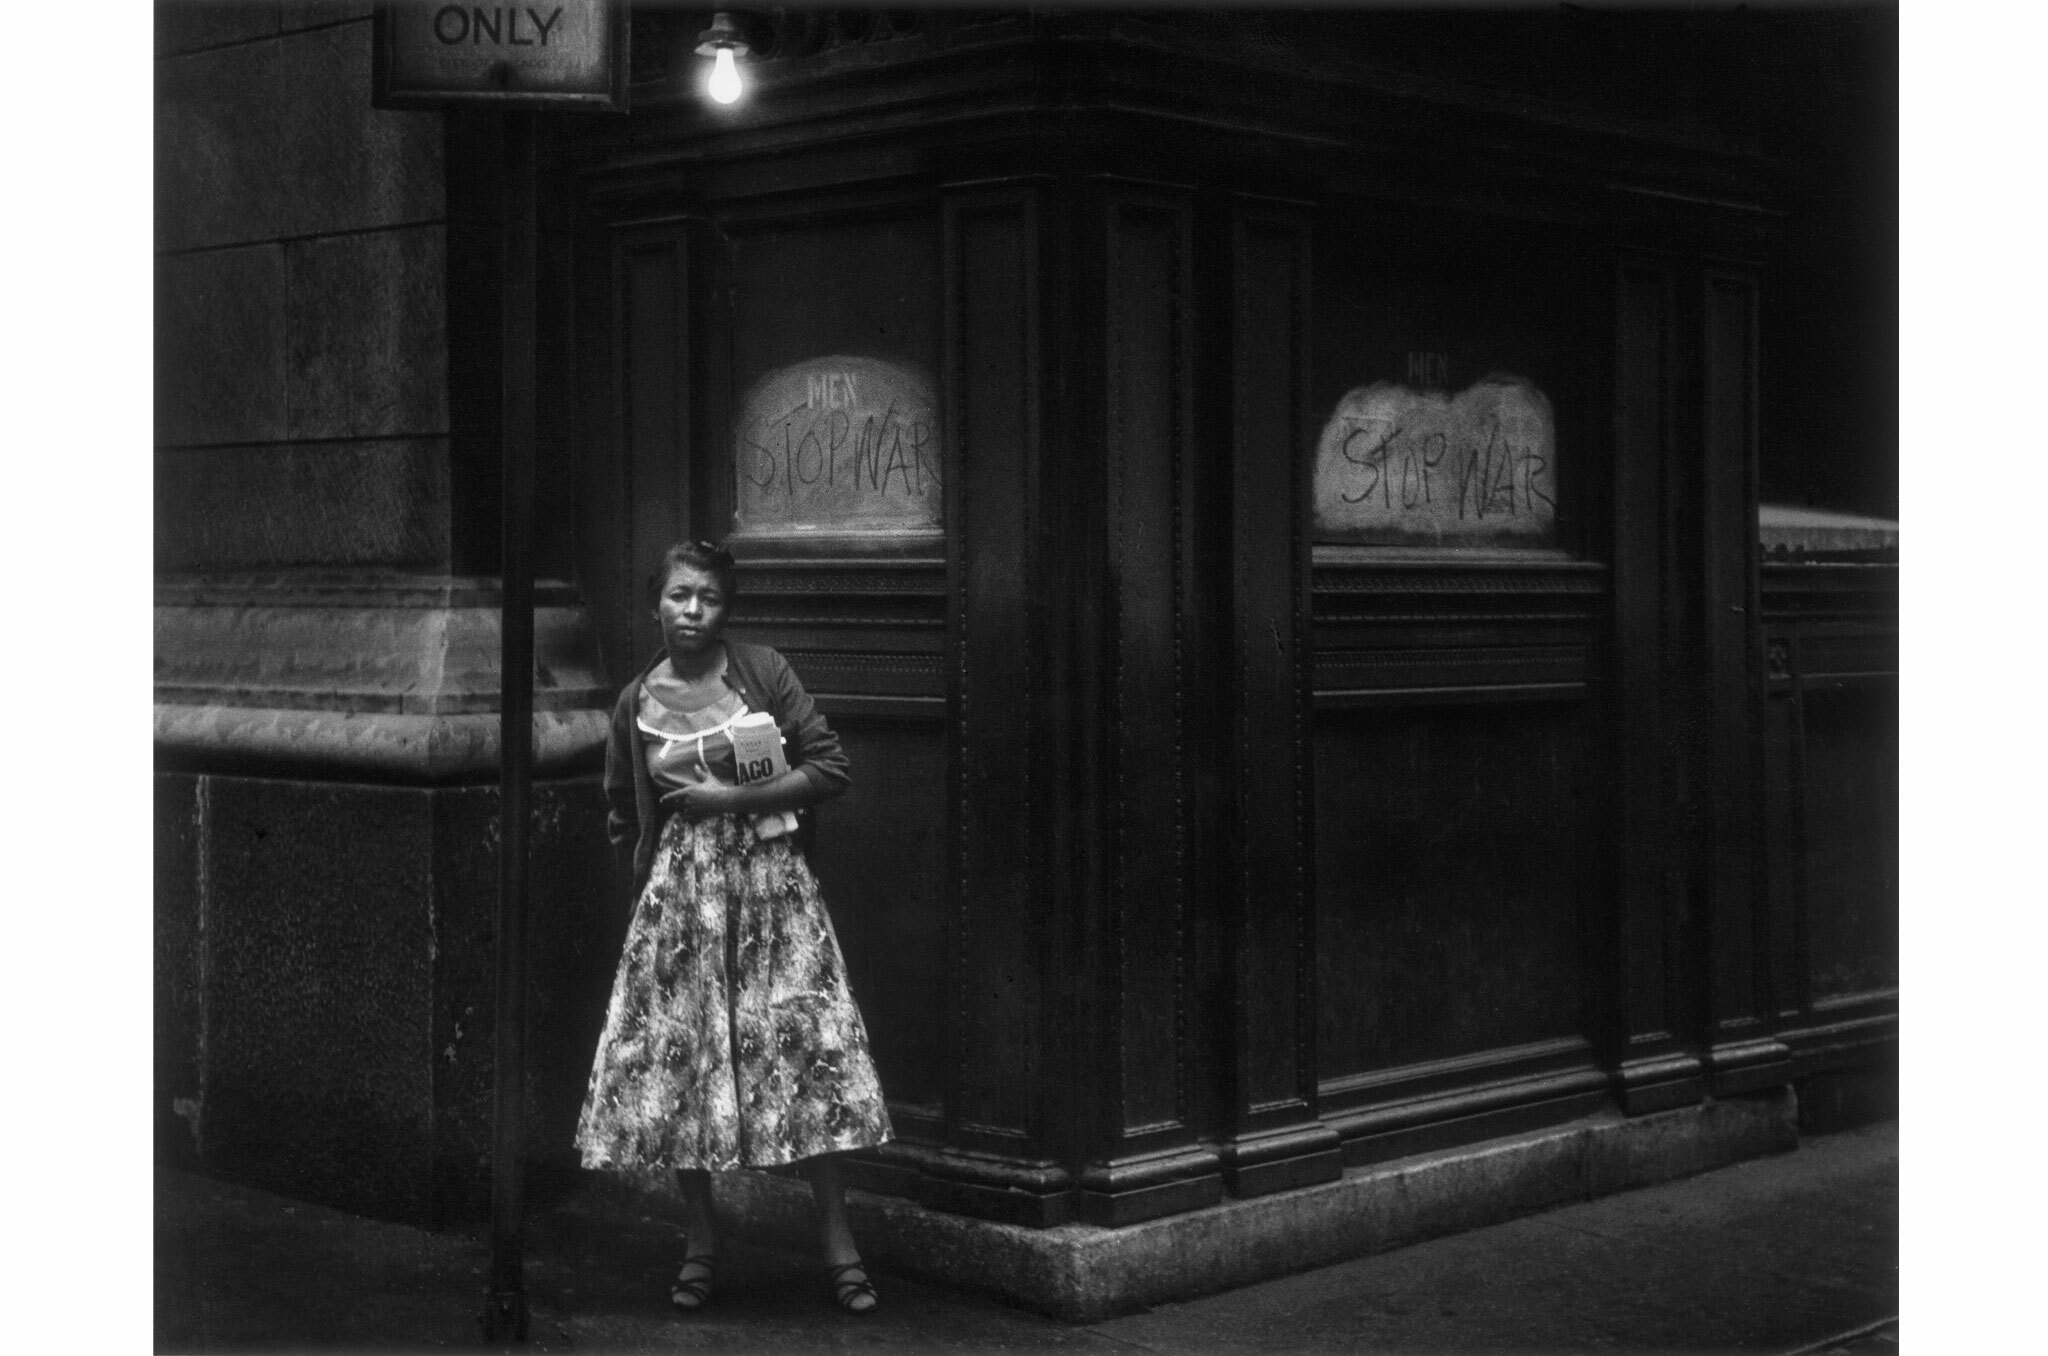 Dave Heath: Dialogues with Solitude